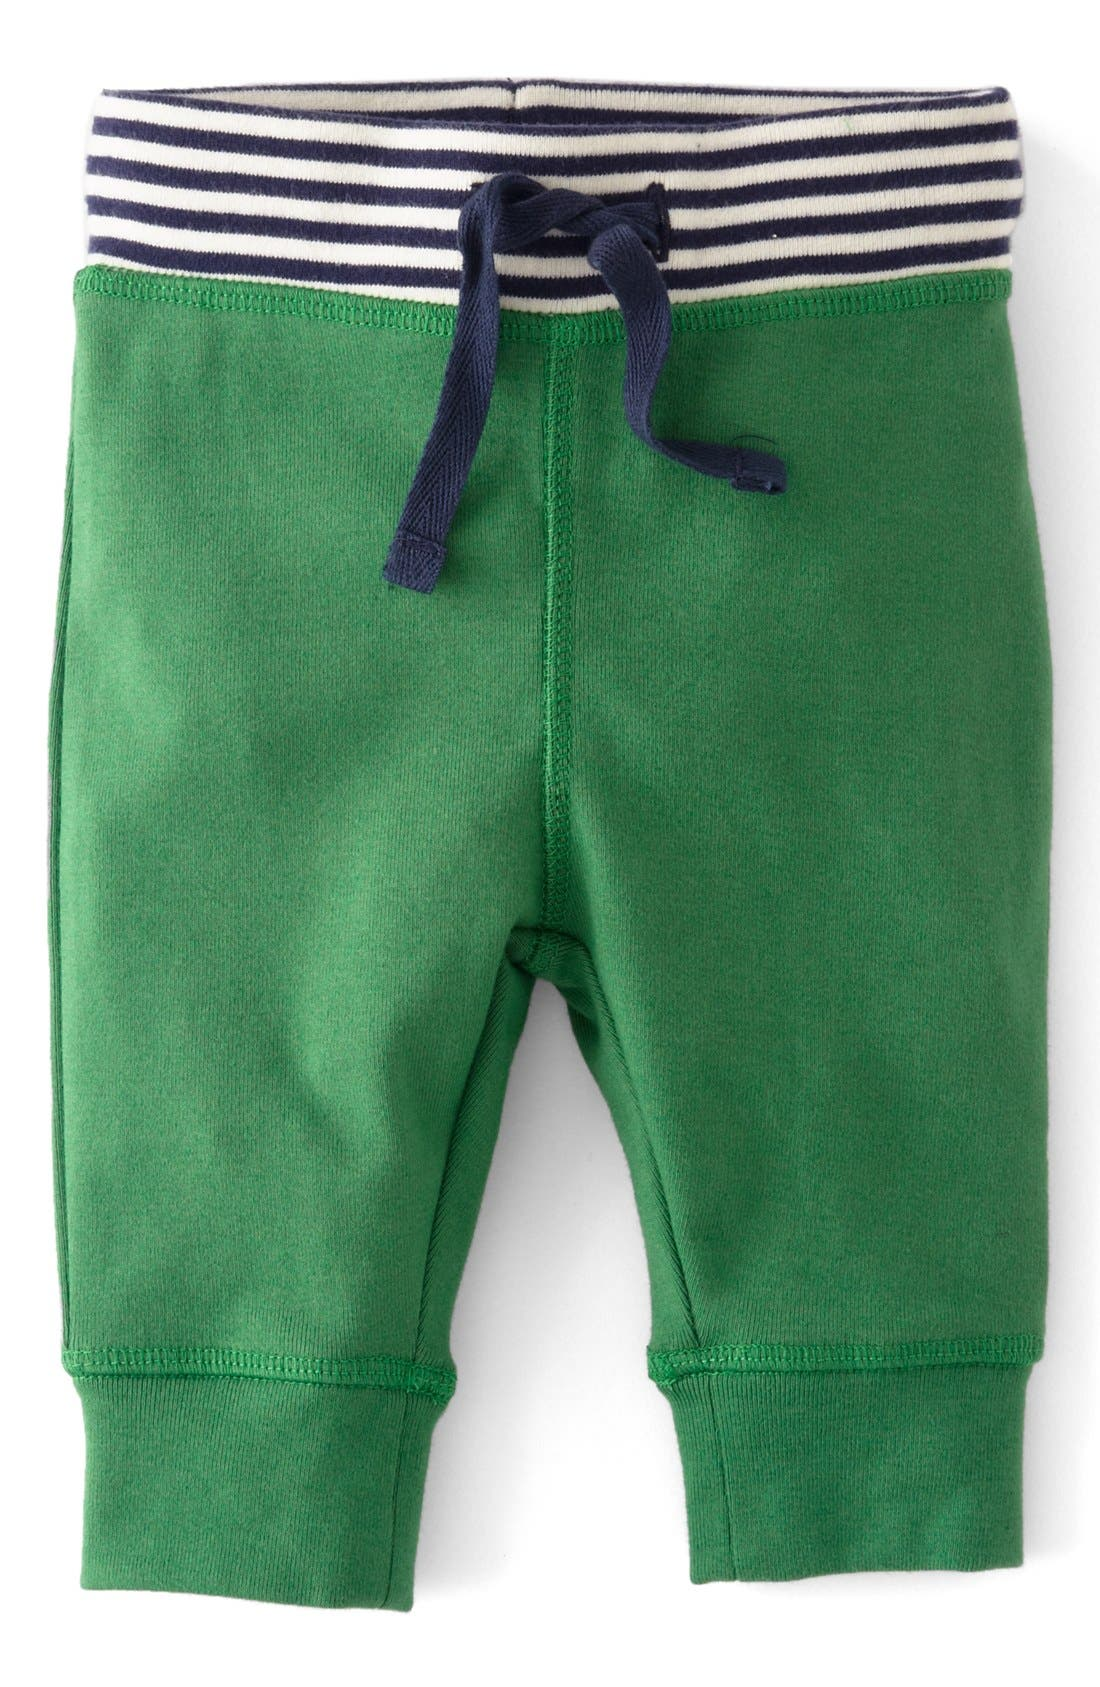 Alternate Image 1 Selected - Mini Boden 'Essential' Cotton Jersey Pants (Baby Boys)